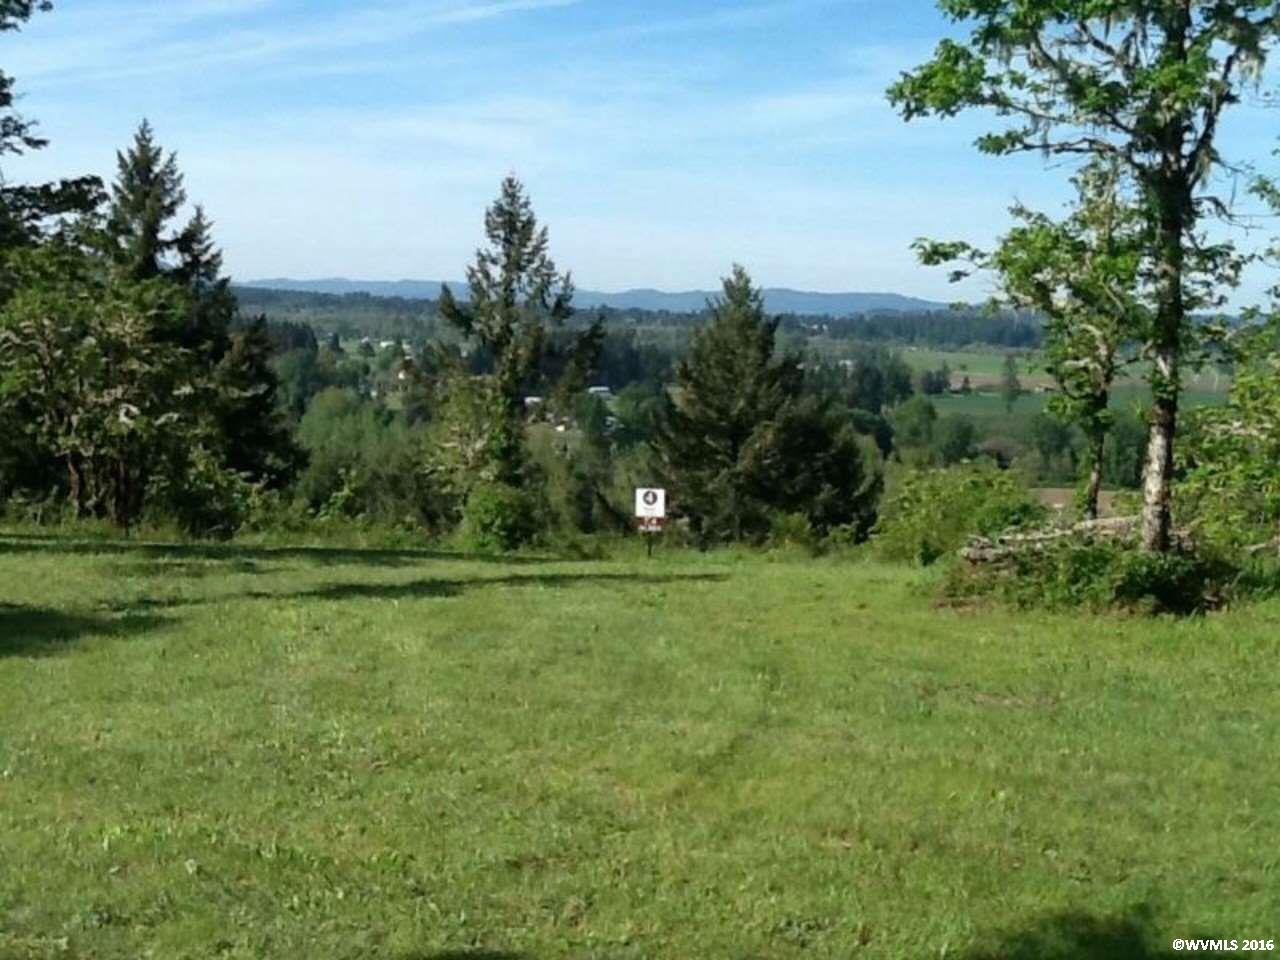 Image of  for Sale near Springfield, Oregon, in Lane County: 14 acres